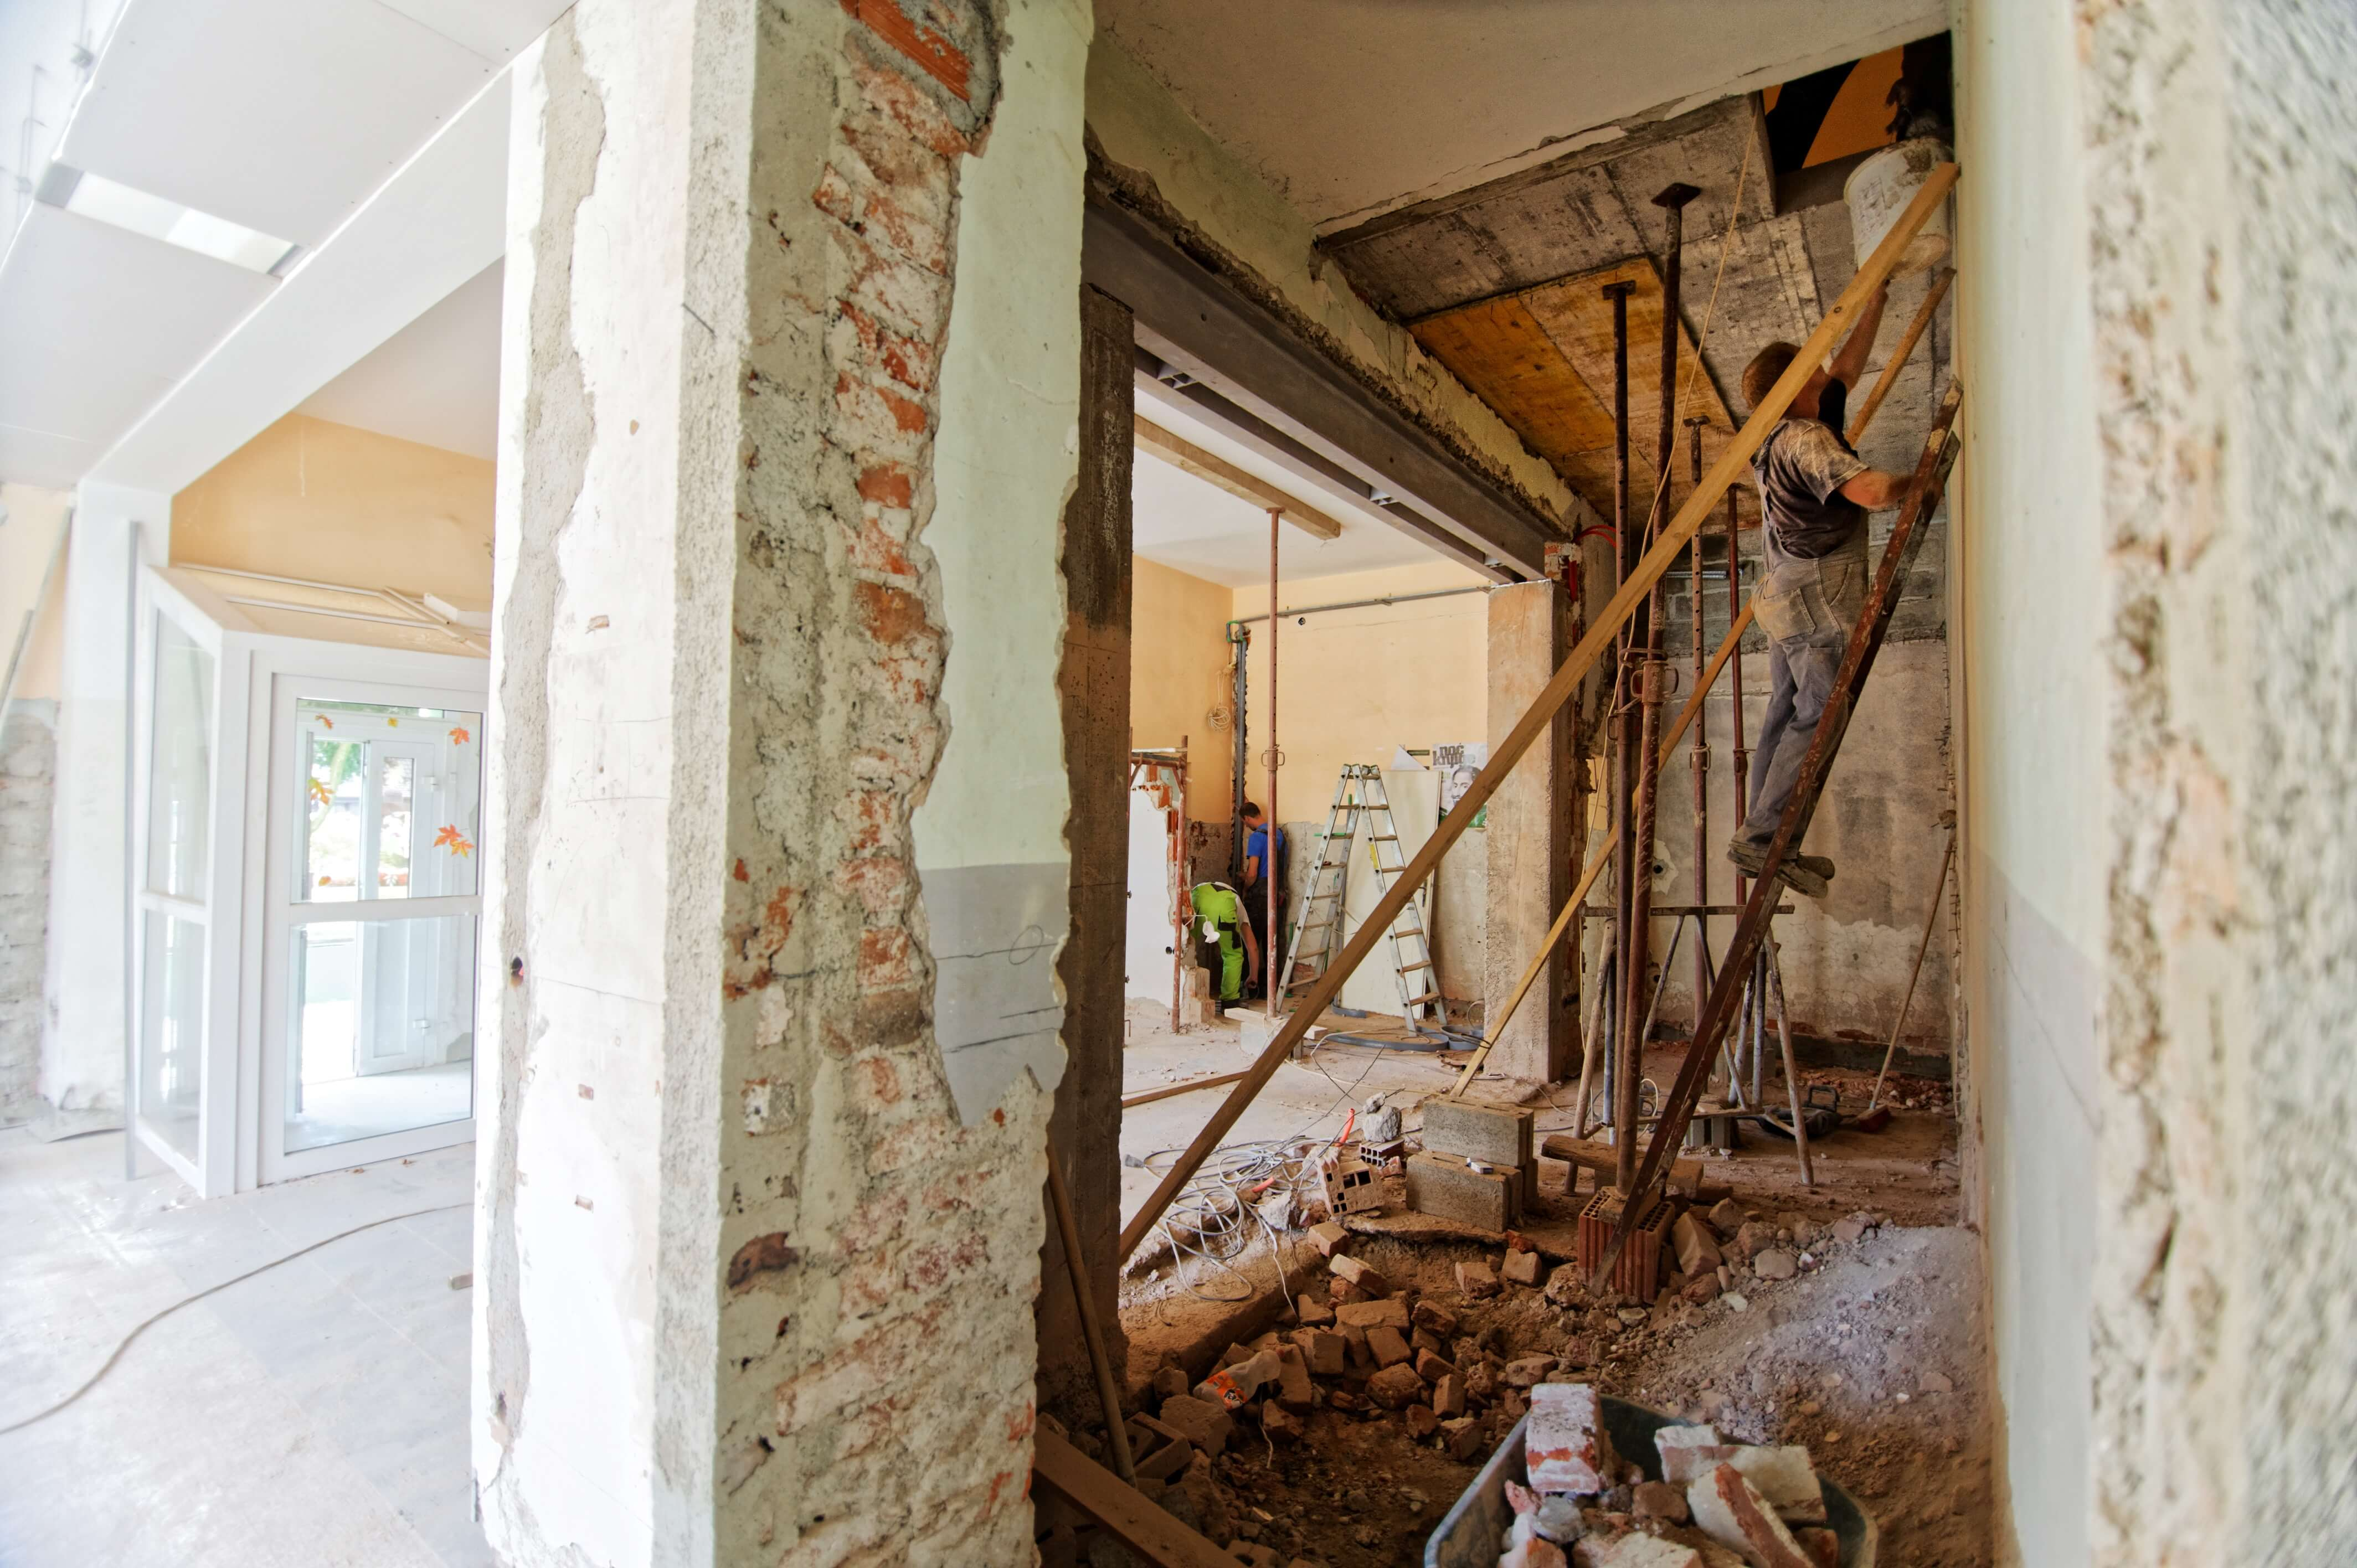 A few improvements that will increase your home's value